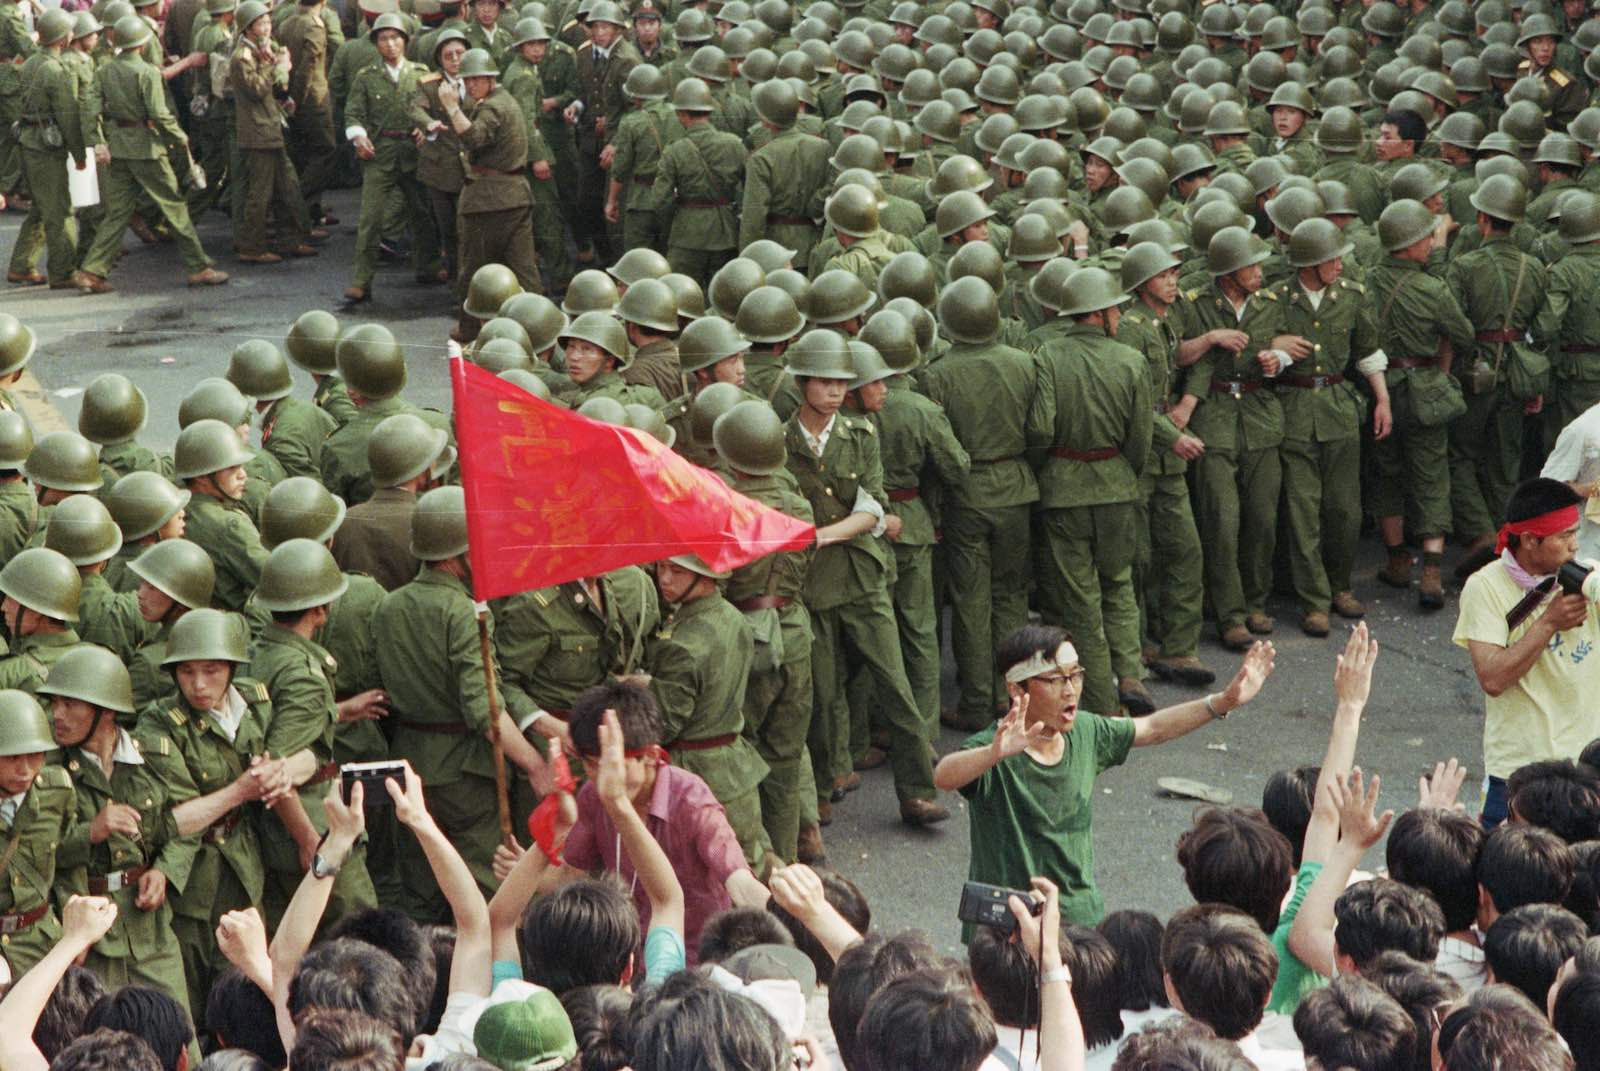 Soldiers and demonstrators at Tiananmen Square (Photo: David Turnley via Getty)